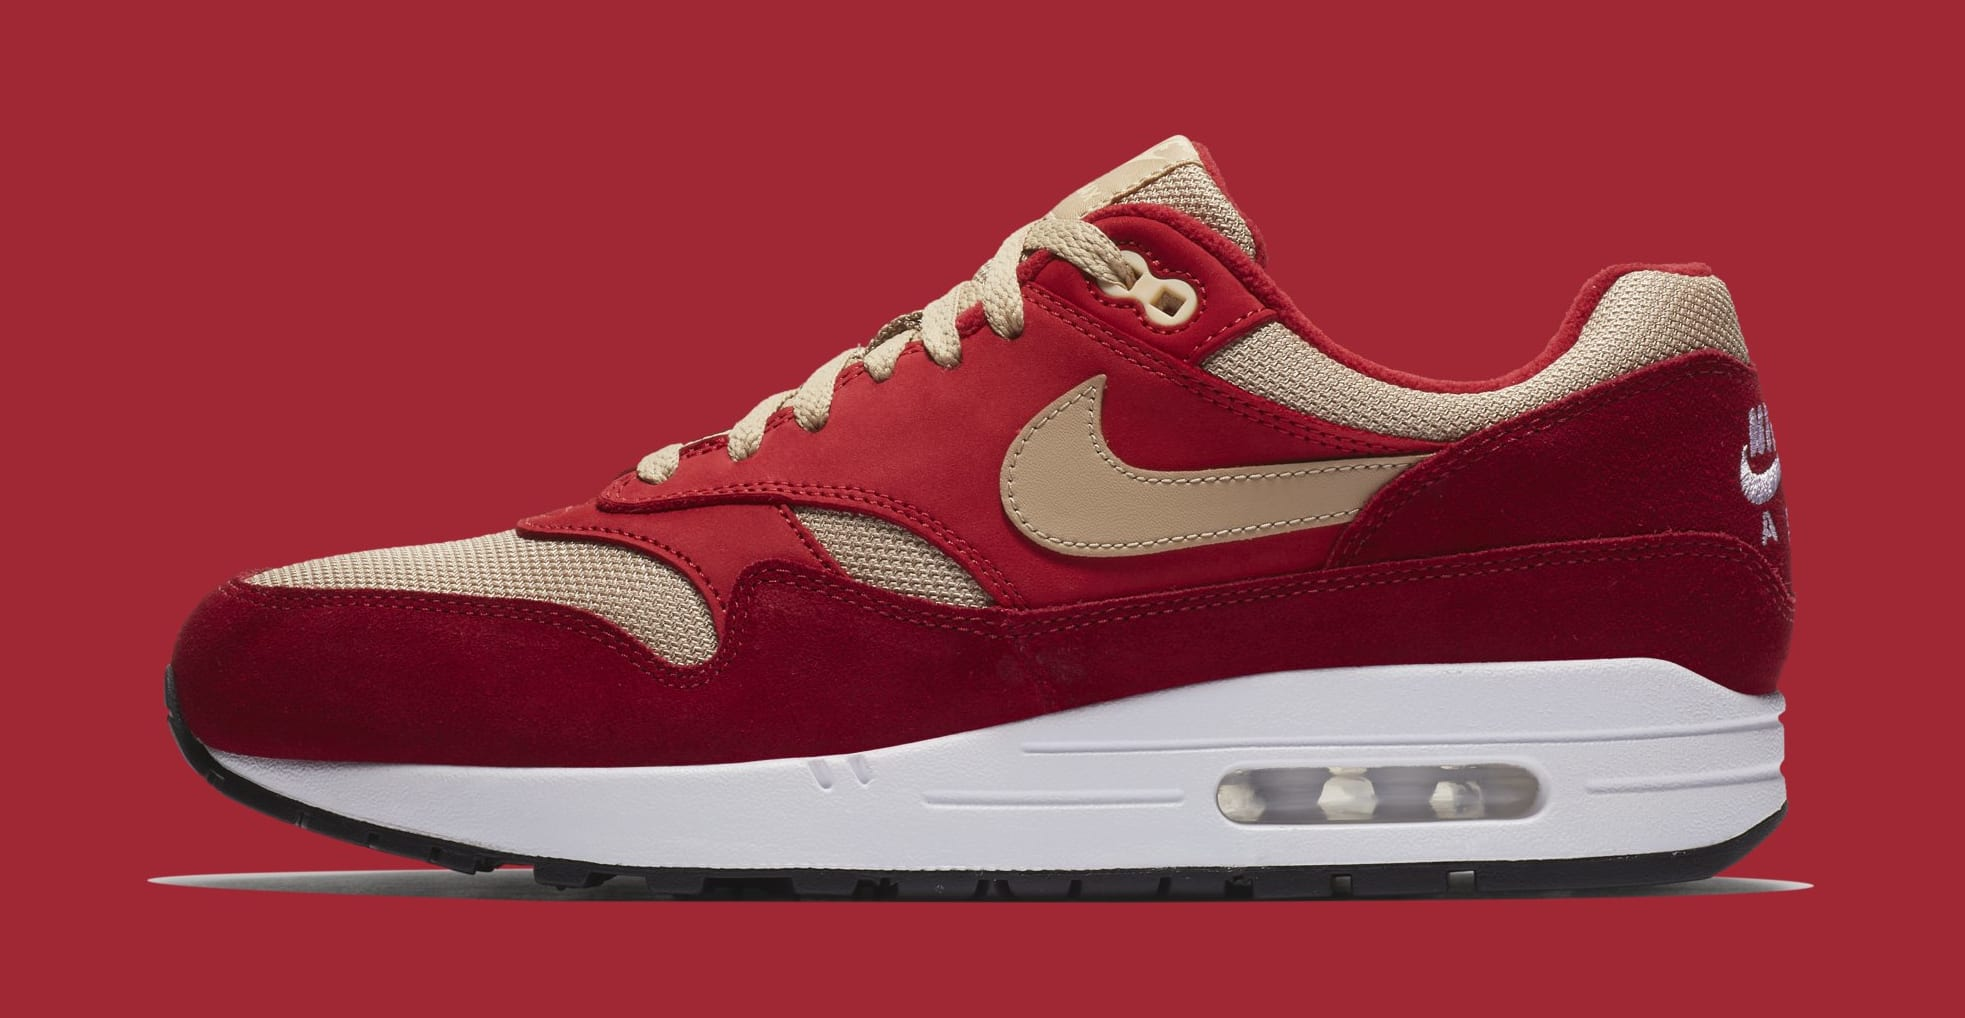 Atmos x Nike Air Max 1 'Red Curry' 908366-600 (Lateral)